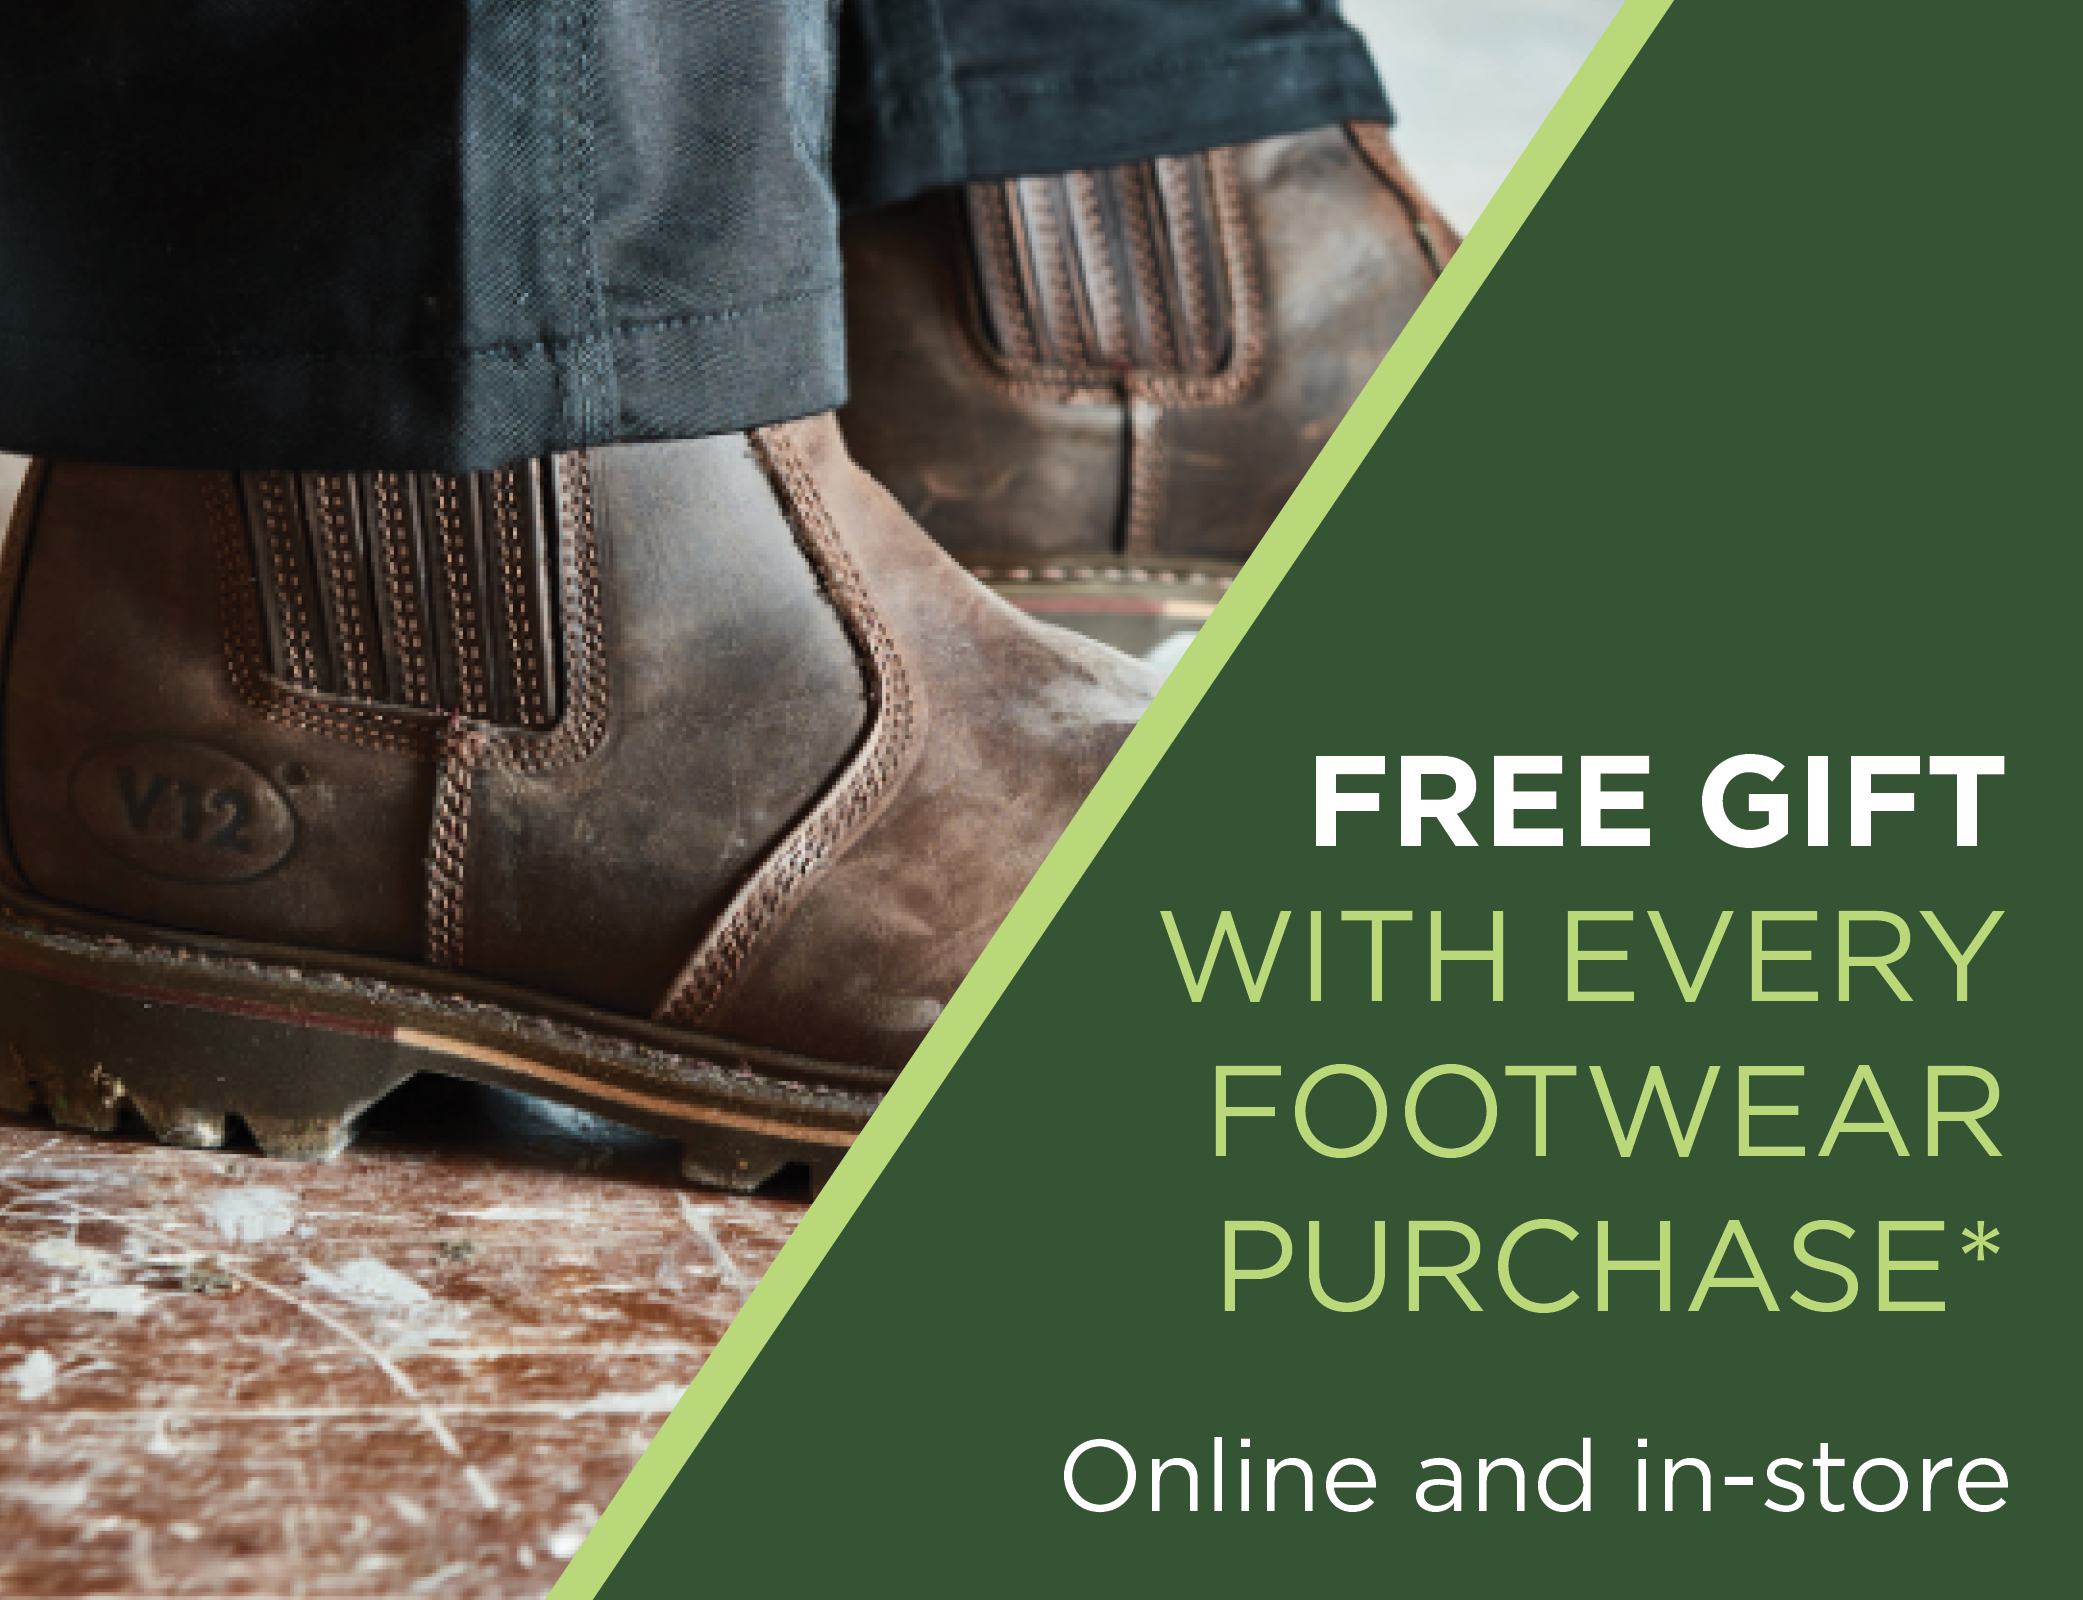 Free Gift With Every Footwear Purchase – Buckler Boots and V12